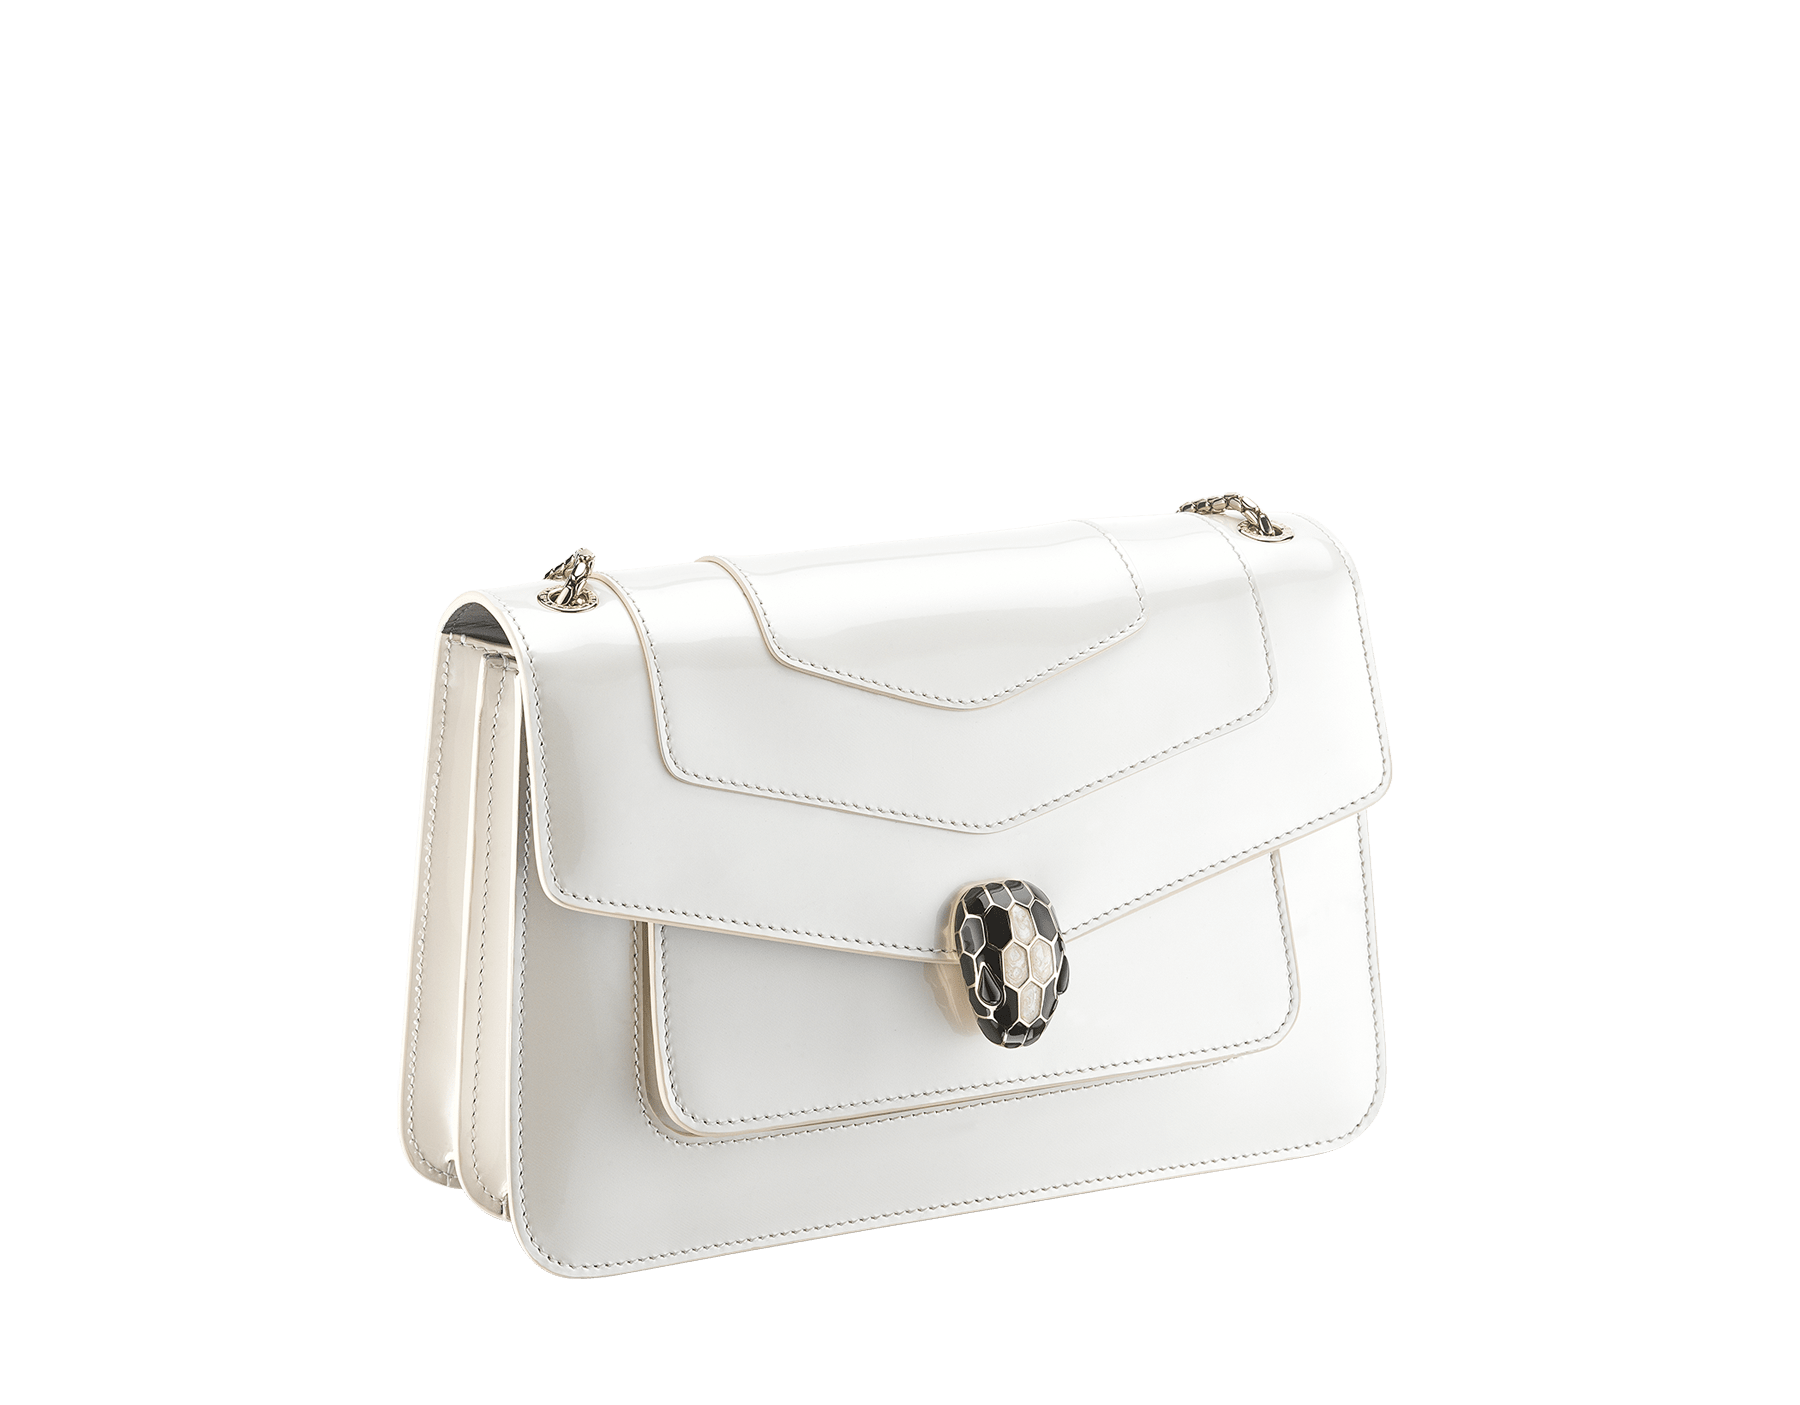 """Serpenti Forever"" crossbody bag in white agate calf leather with a varnished and pearled effect. Iconic snakehead closure in light gold plated brass enriched with black and pearled white agate enamel and black onyx eyes. 290273 image 2"